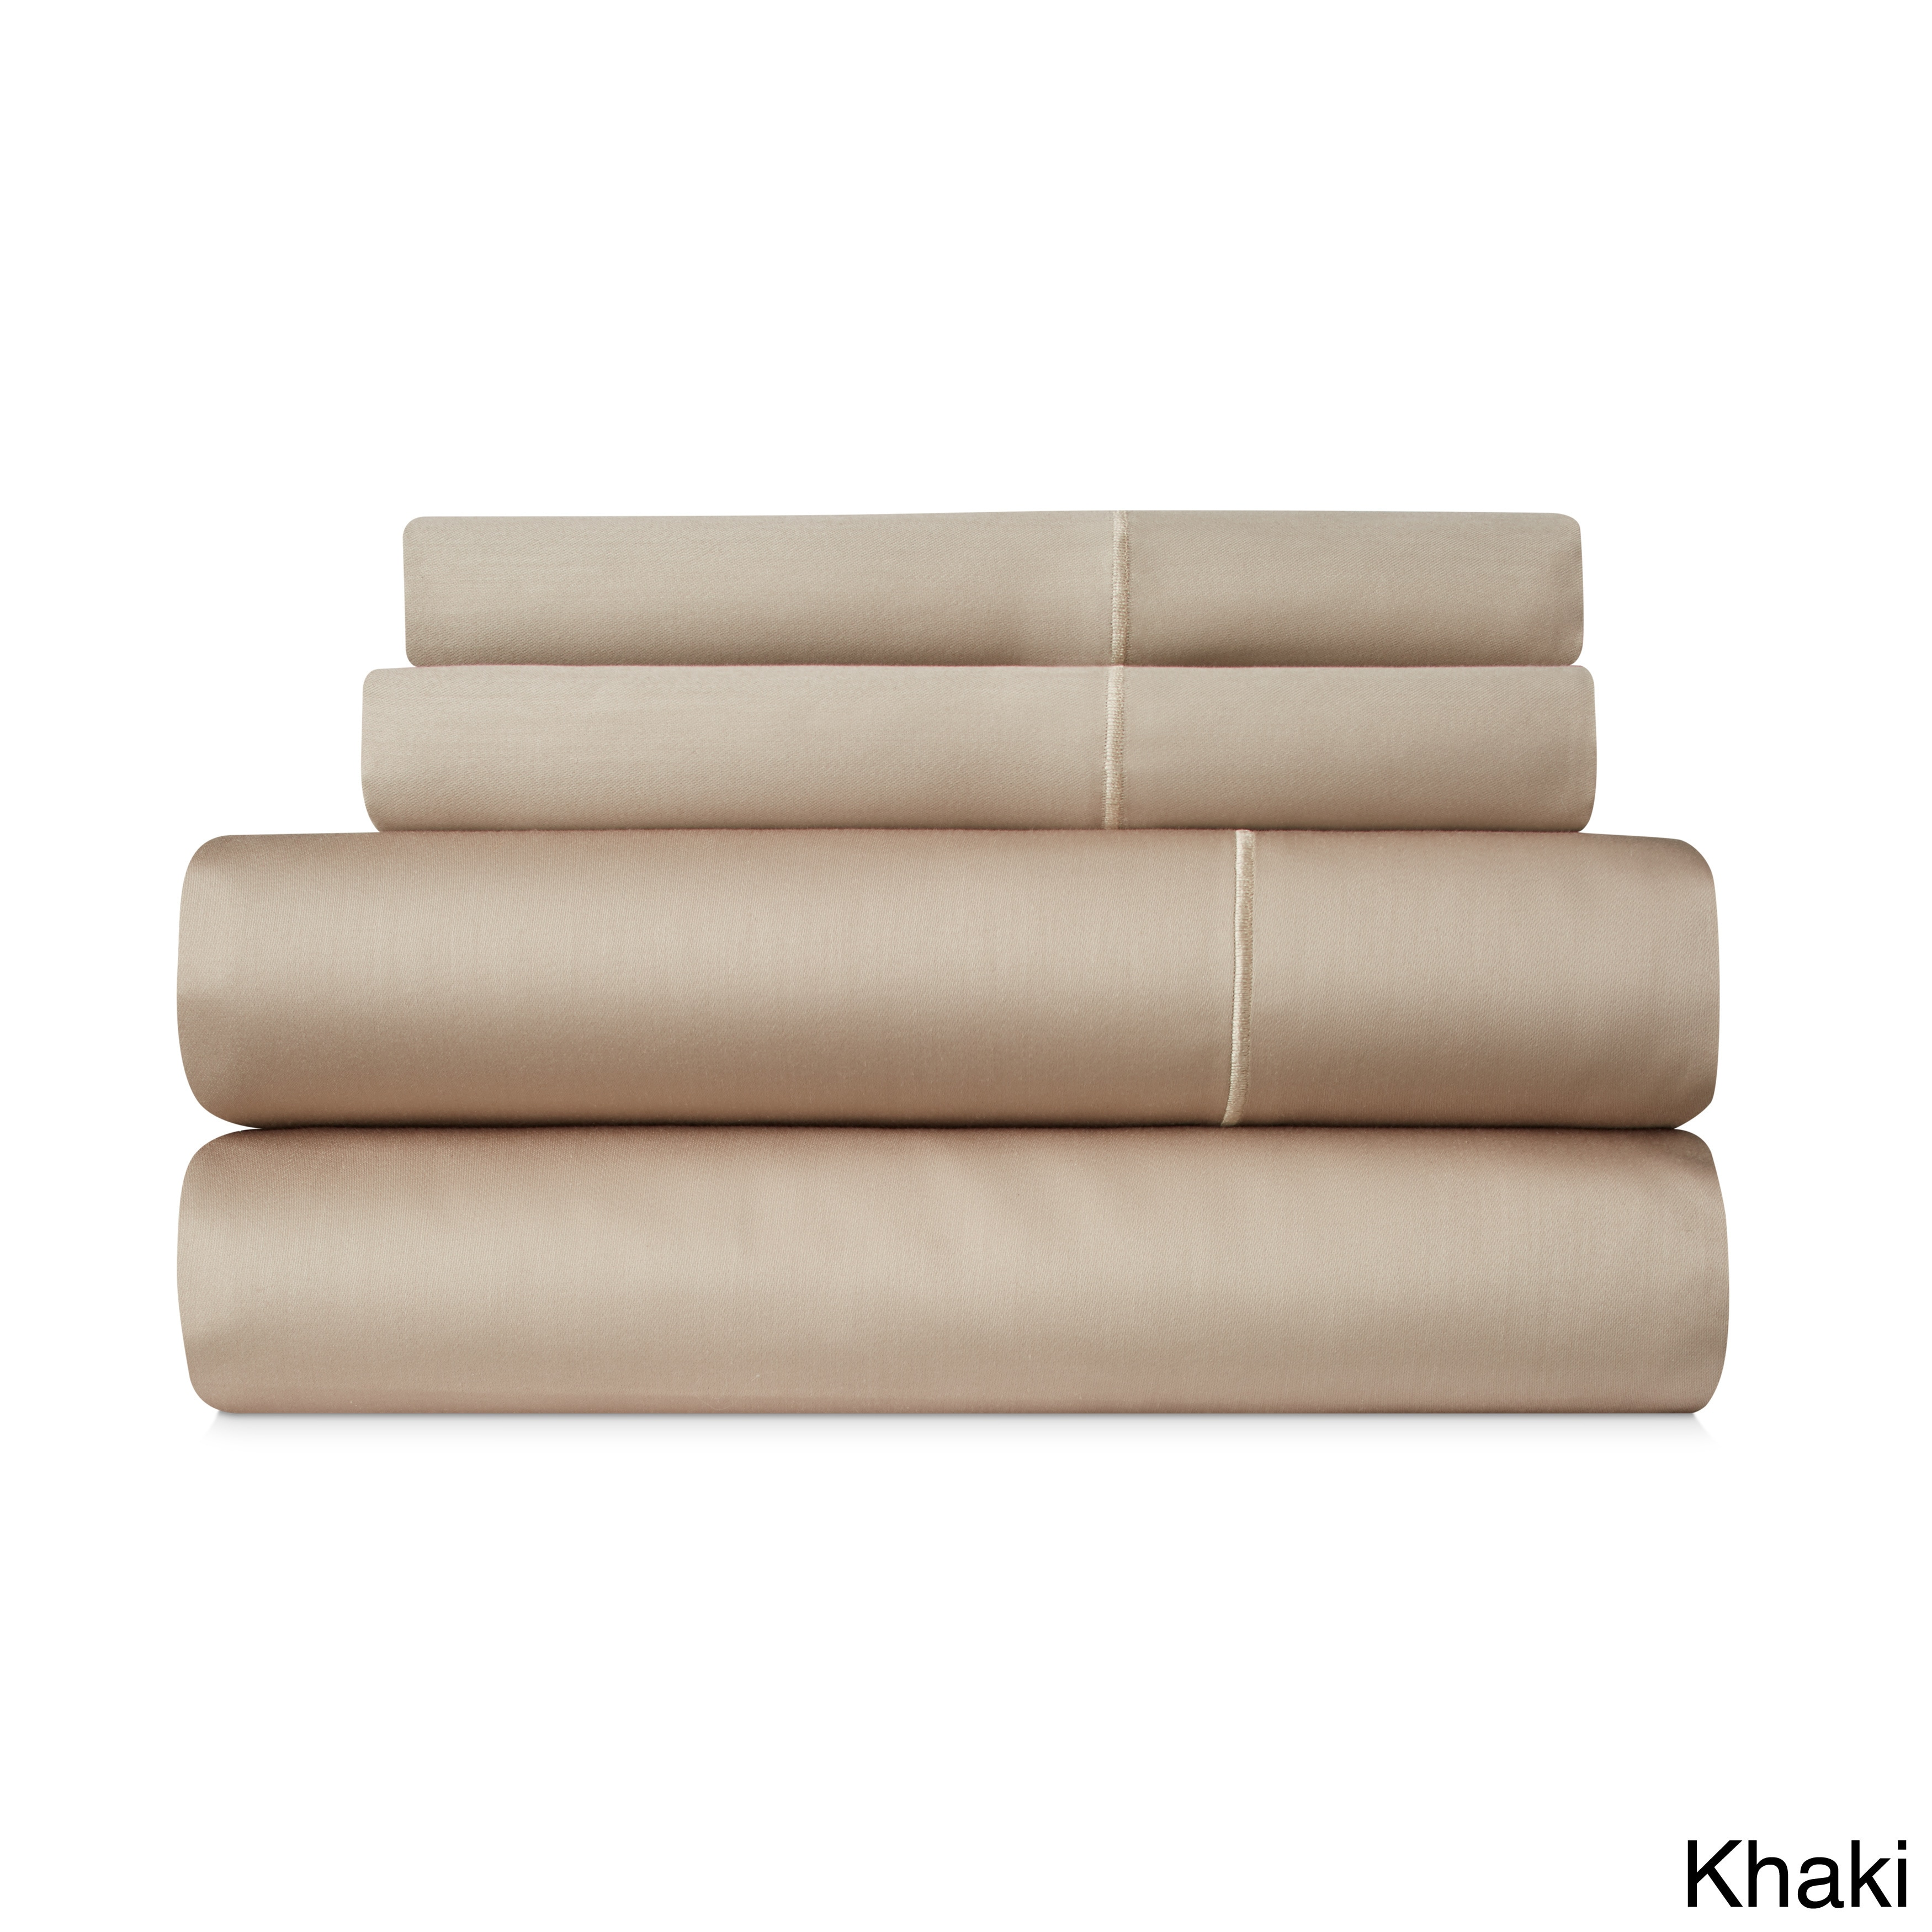 Luxury Sa Cotton Blend 1000 Thread Count Deep Pocket Sheet Set On Free Shipping Today 9554795